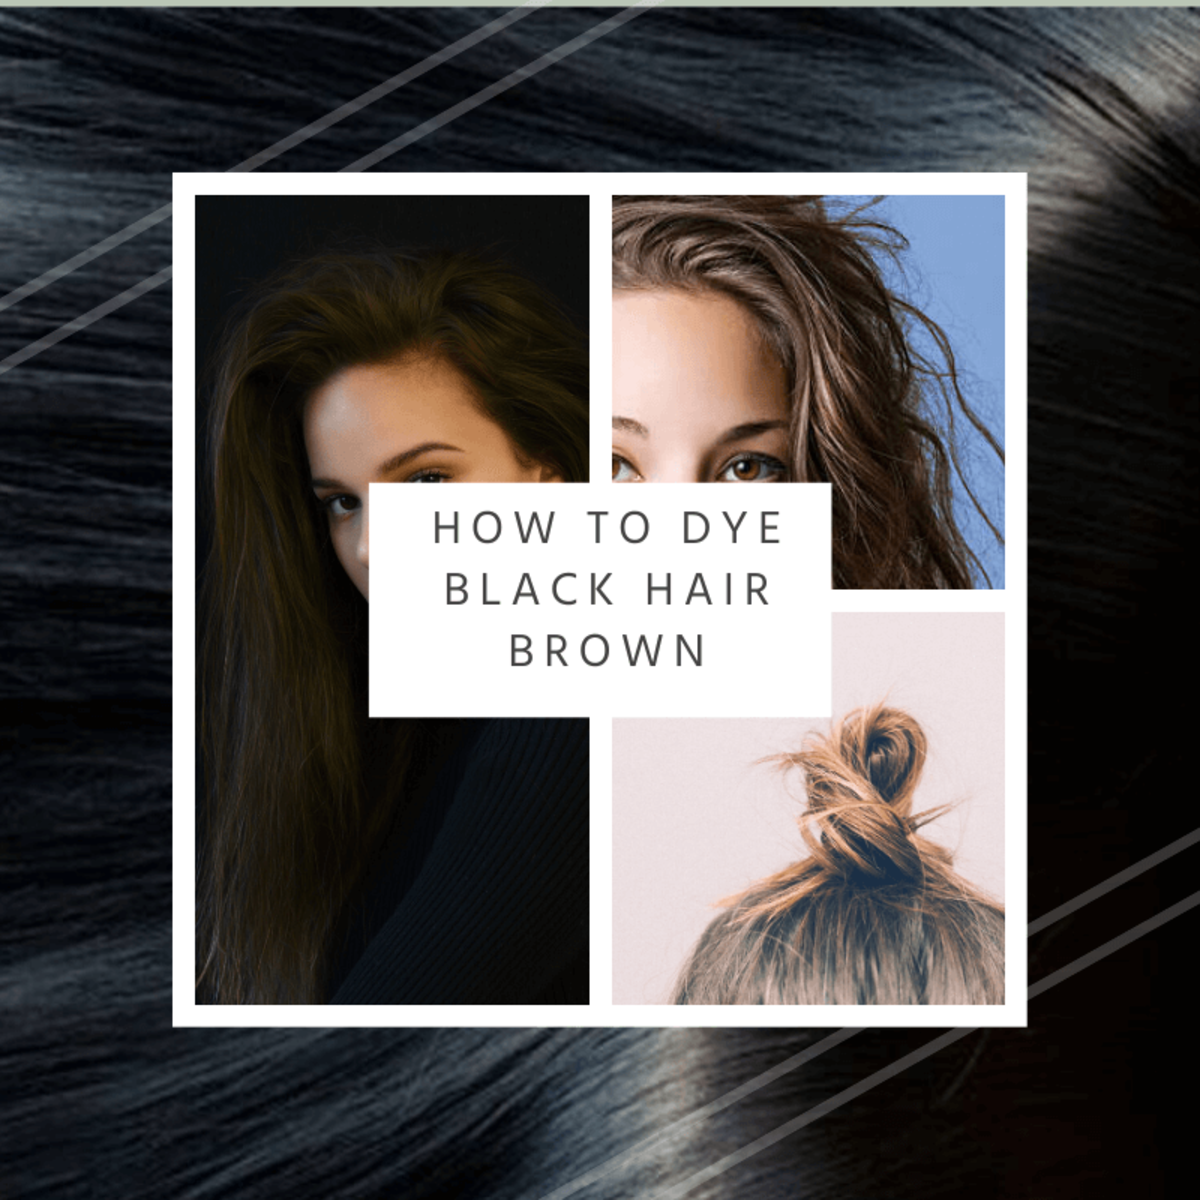 How to Dye Black Hair Brown